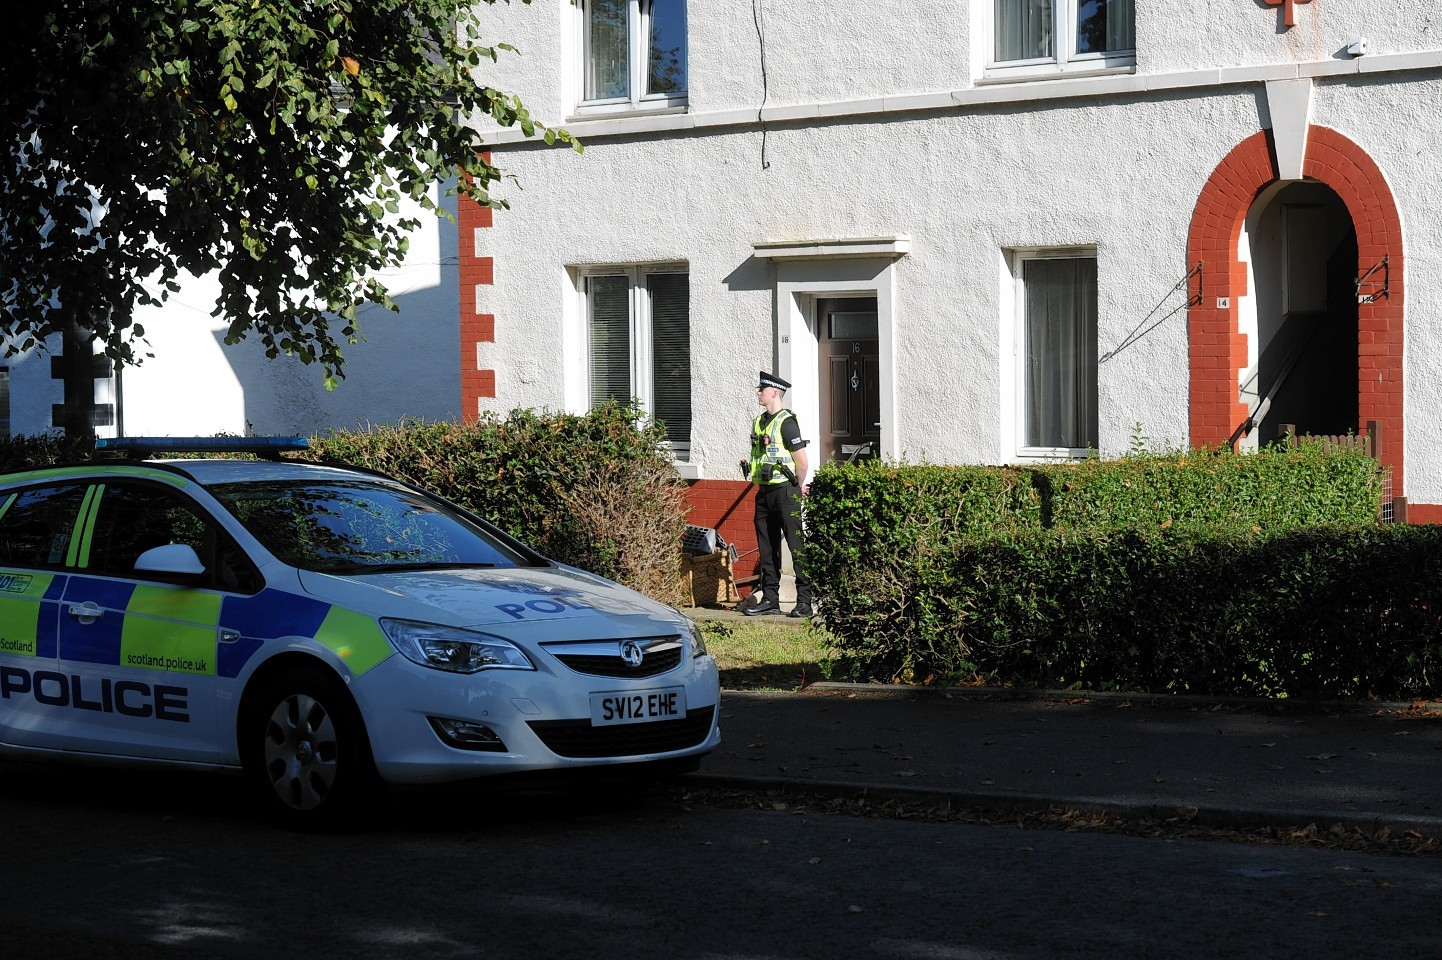 A policeman stands guard outside the flats in Middlefield Terrace, Aberdeen.